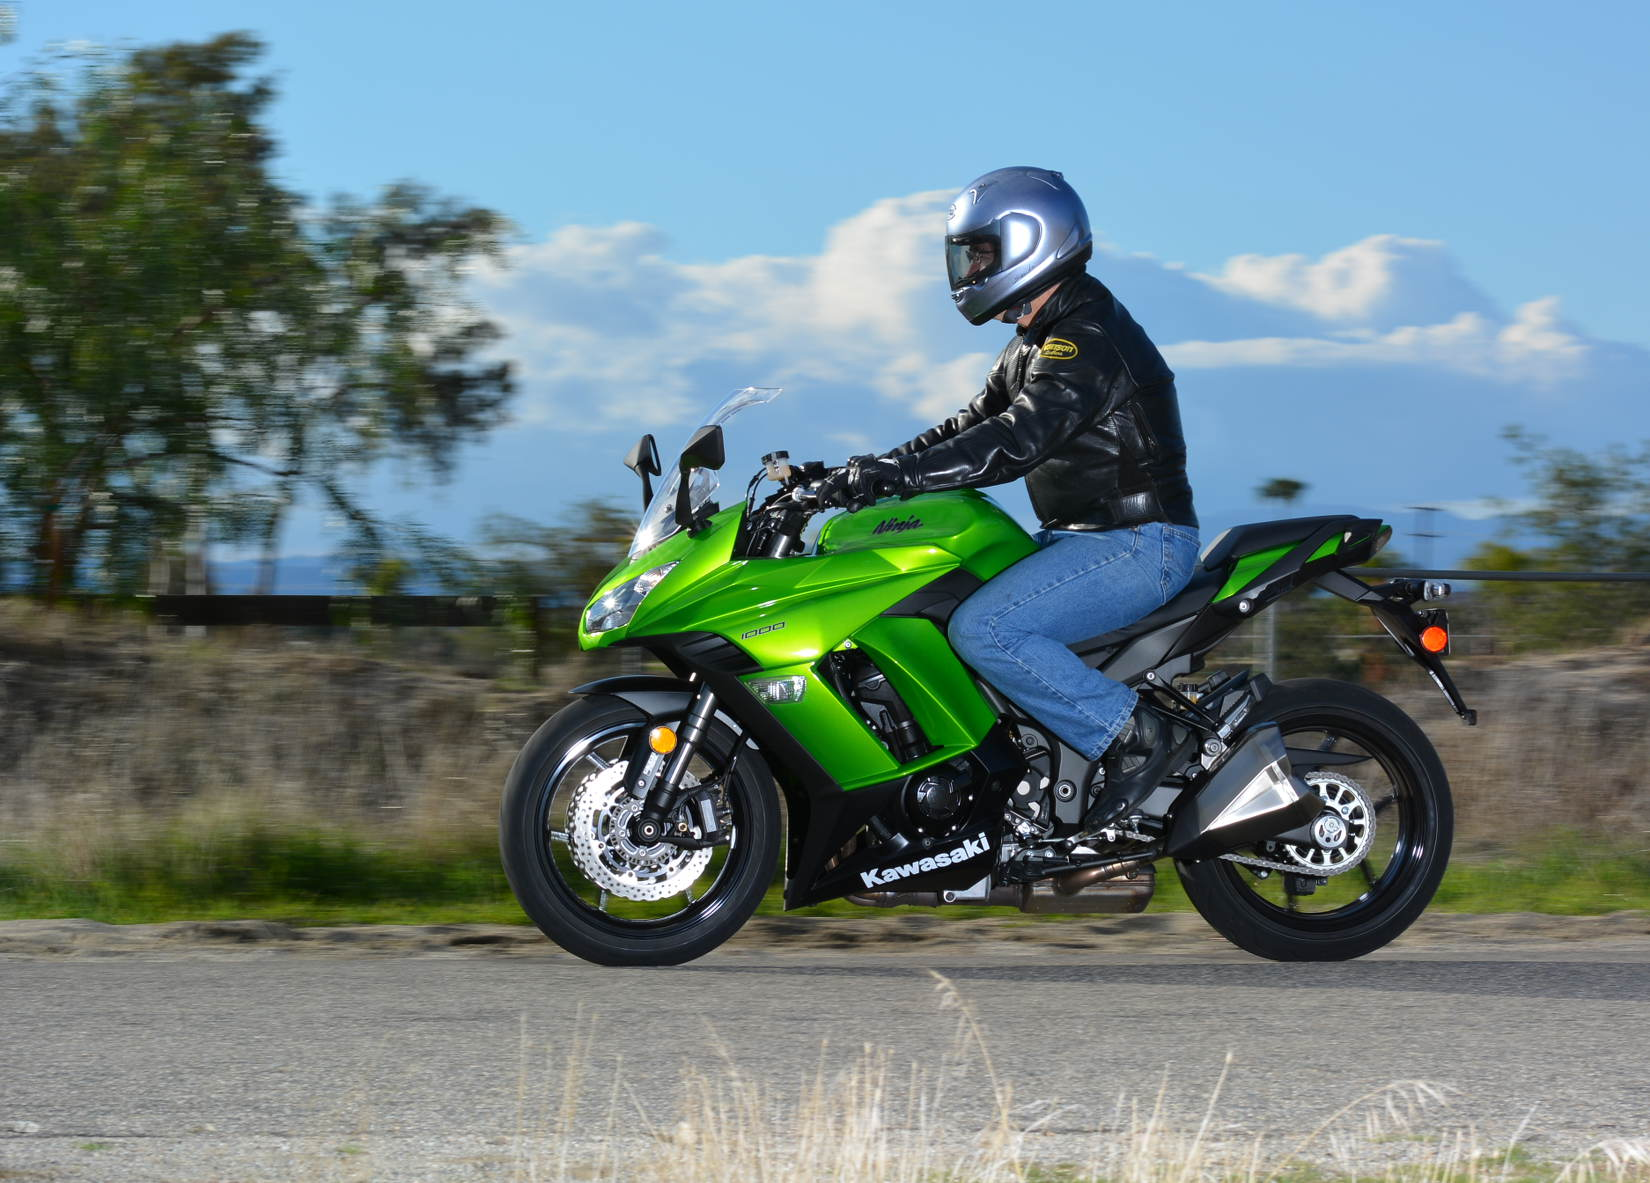 2014 Kawasaki Ninja 1000 Abs Md Ride Review Motorcycledailycom